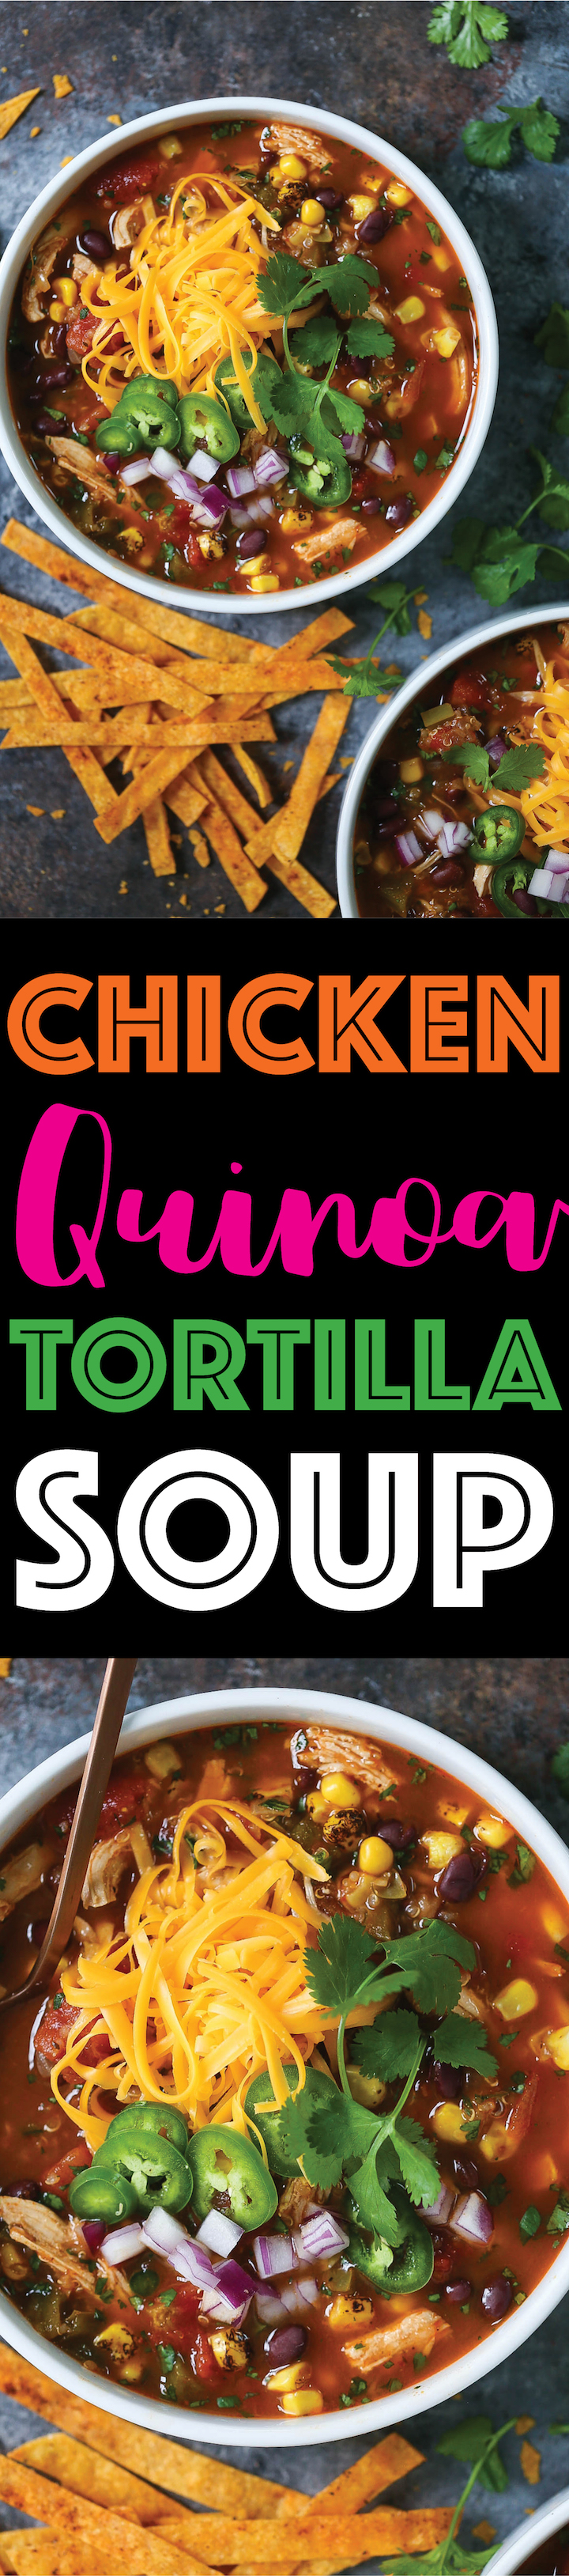 Chicken and Quinoa Tortilla Soup - Everyone's FAVORITE chicken tortilla soup, except made healthier and heartier with added quinoa. This cozy soup is full of fiber and protein to keep you full all day long! You can also add the easiest homemade crispy BAKED tortilla strips!